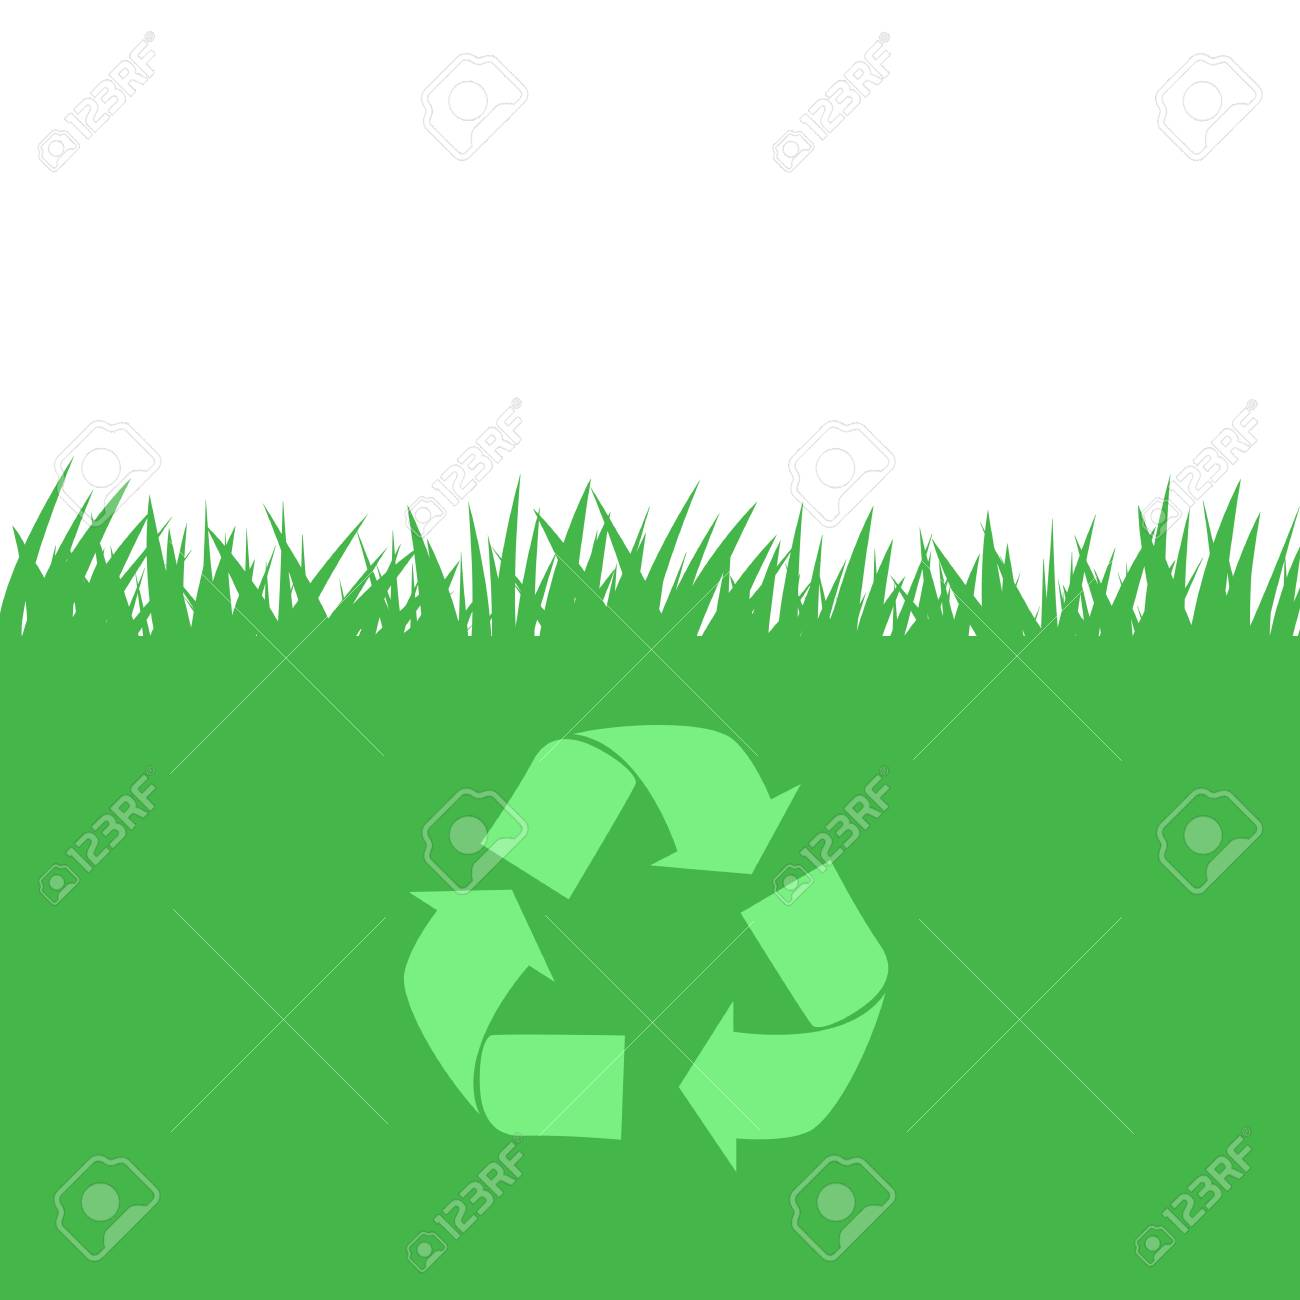 Recycle On Green Grass Texture Background